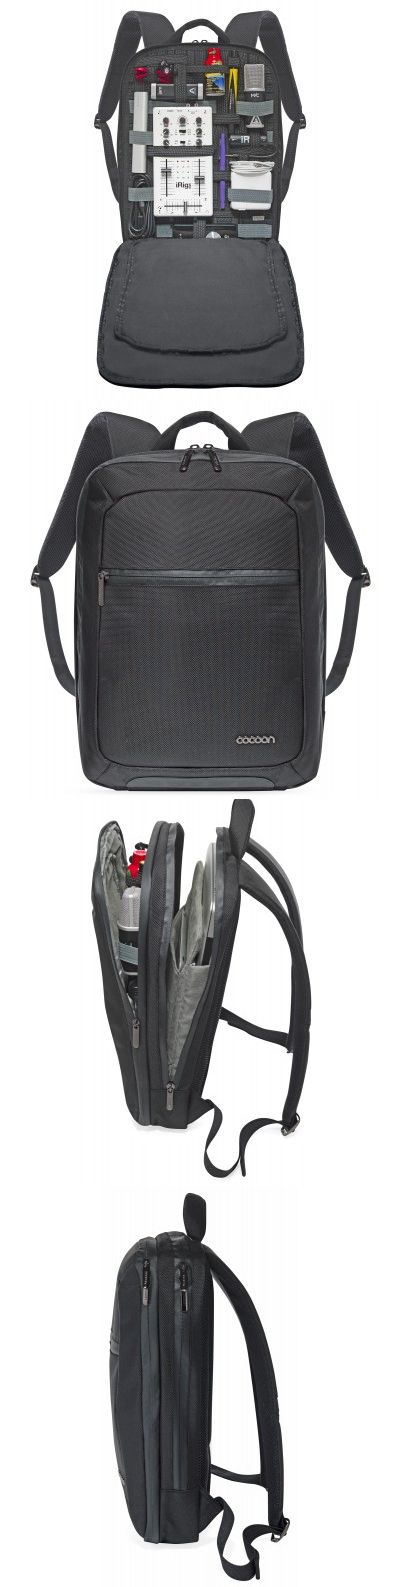 Cocoon SLIM Backpack. This backpack can hold and organize your electronics and a 15in laptop.